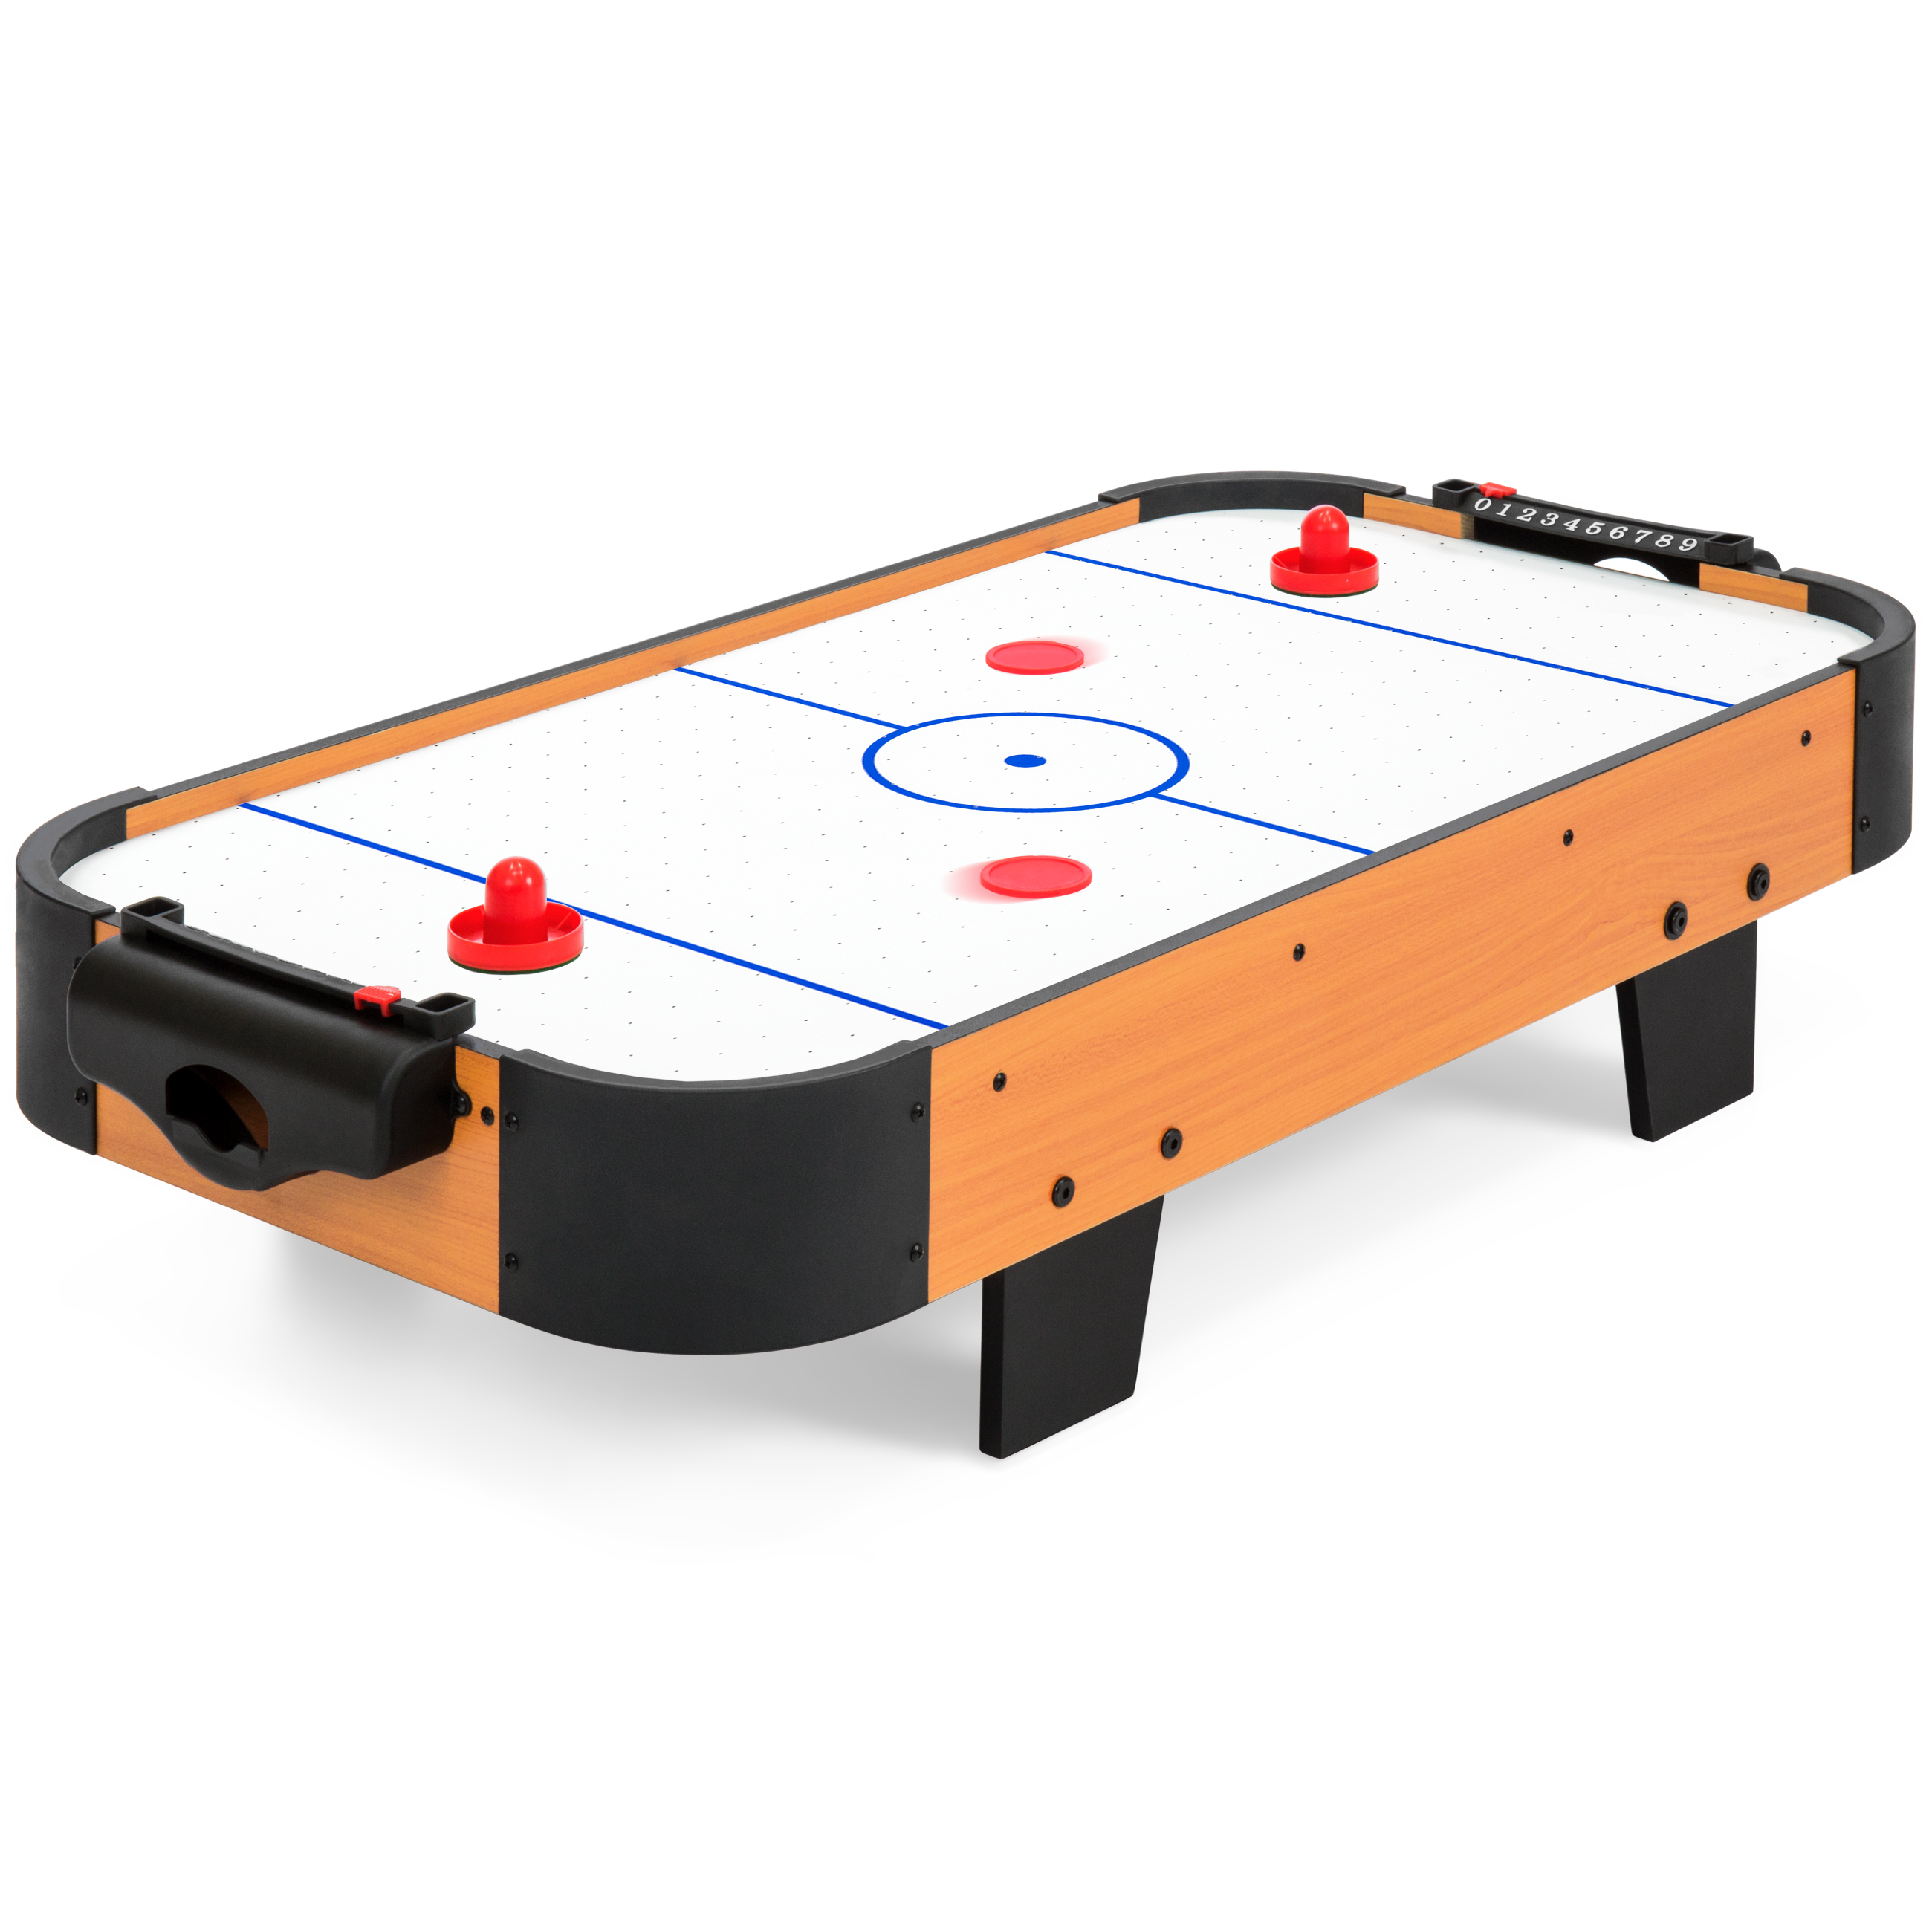 Best Choice Products 40in Air Hockey Table w  Electric Fan Motor, 2 Sticks, 2 Pucks Multicolor by Best Choice Products